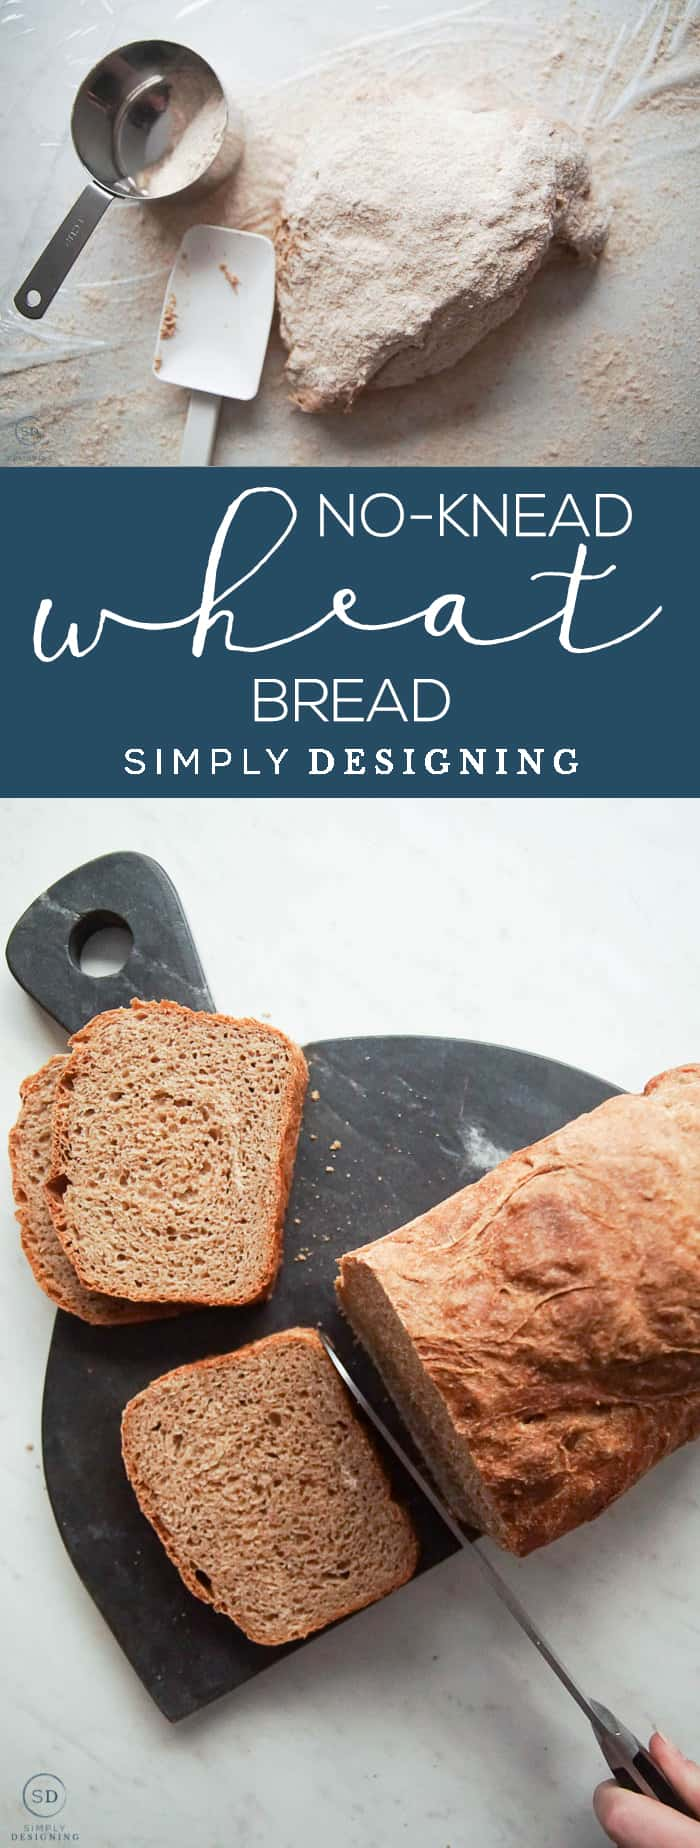 This Whole Wheat No Knead Bread is a fail proof bread recipe that is so simple to make only takes about 5 minutes of hands-on time